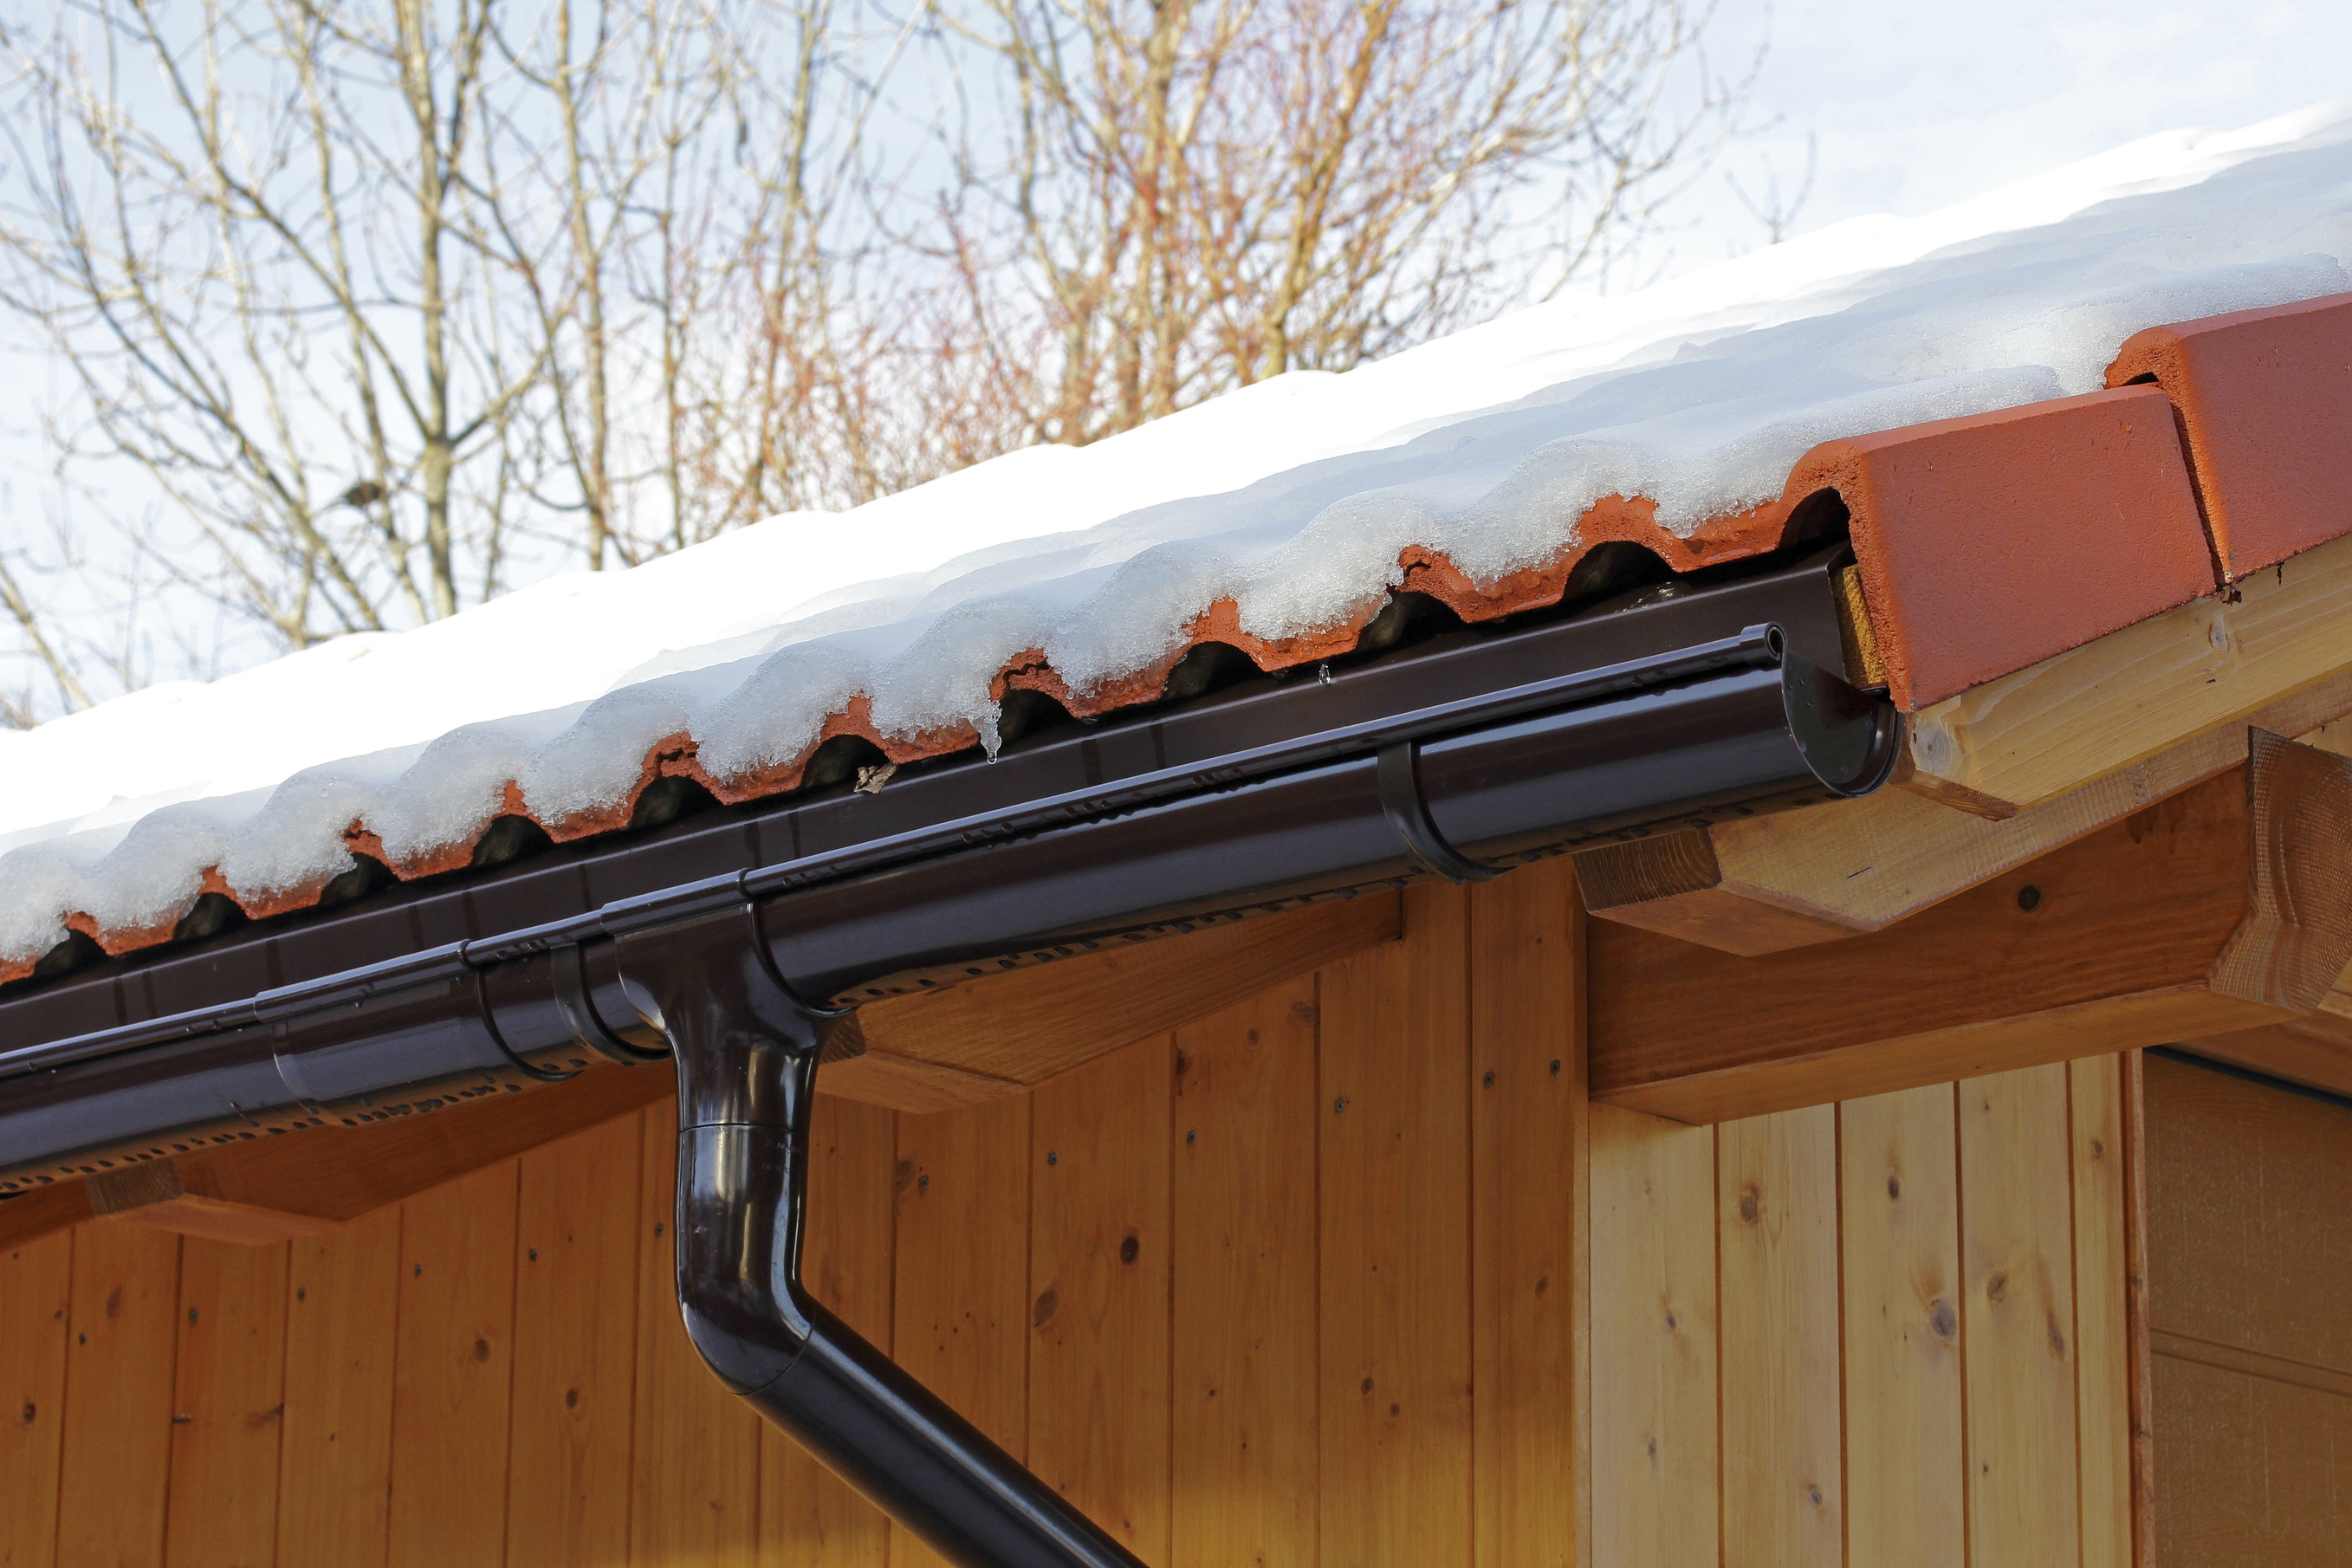 wooden roof with rain gutter and drainpipe in winter